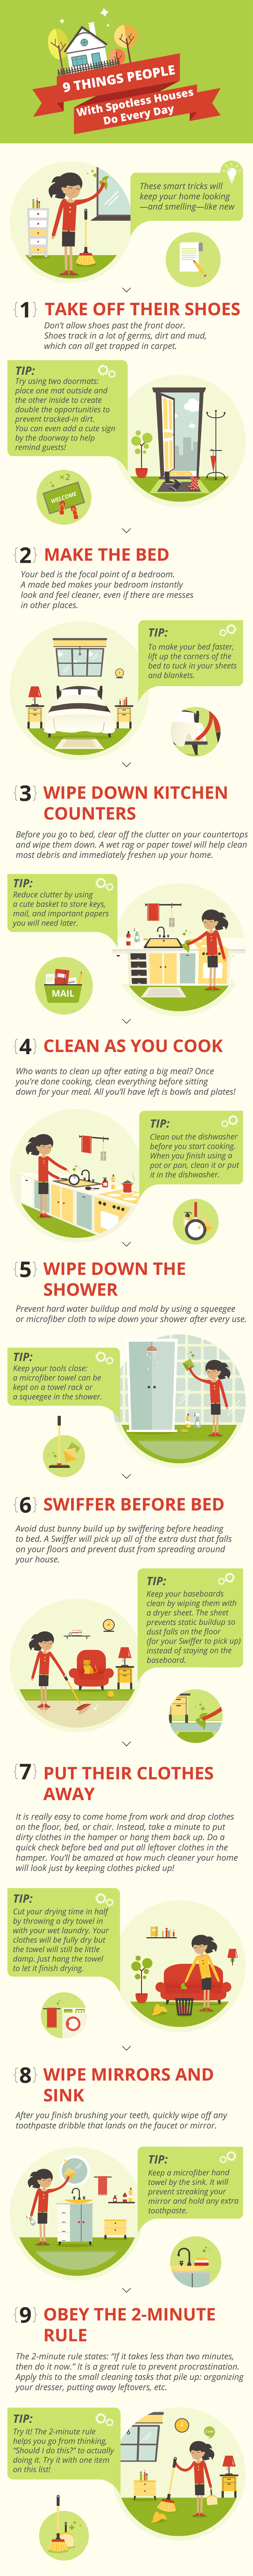 9 Things People With Messy Houses Do Everyday (Infographic)